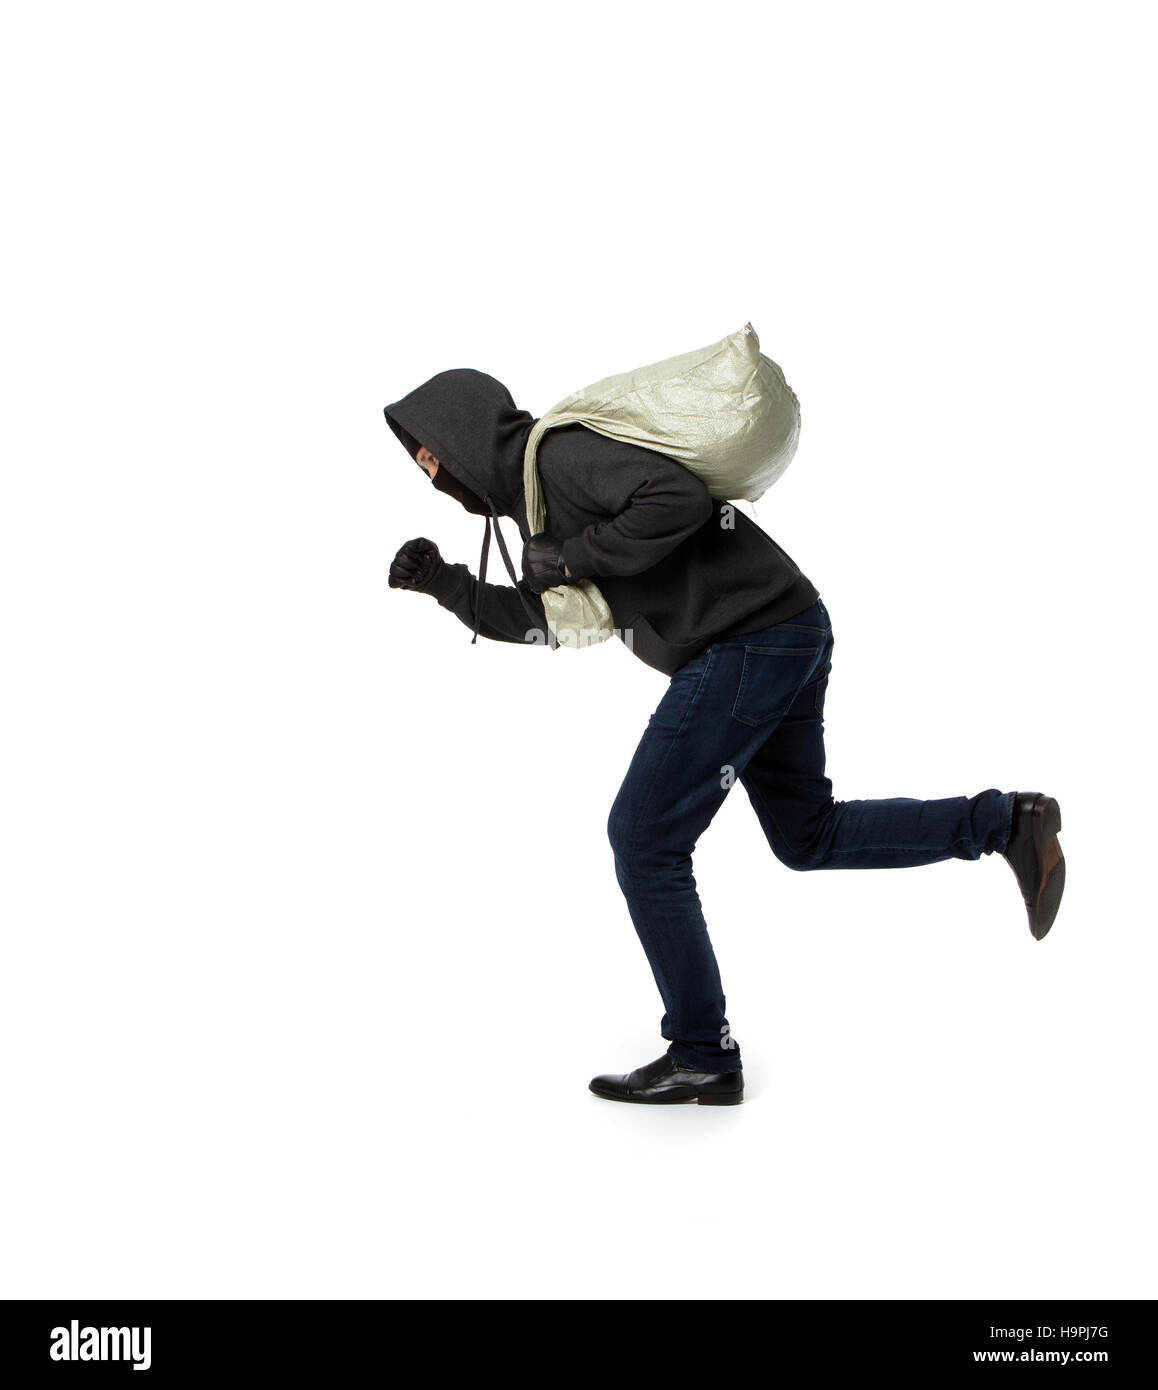 Thief escapes with full bag - Stock Image